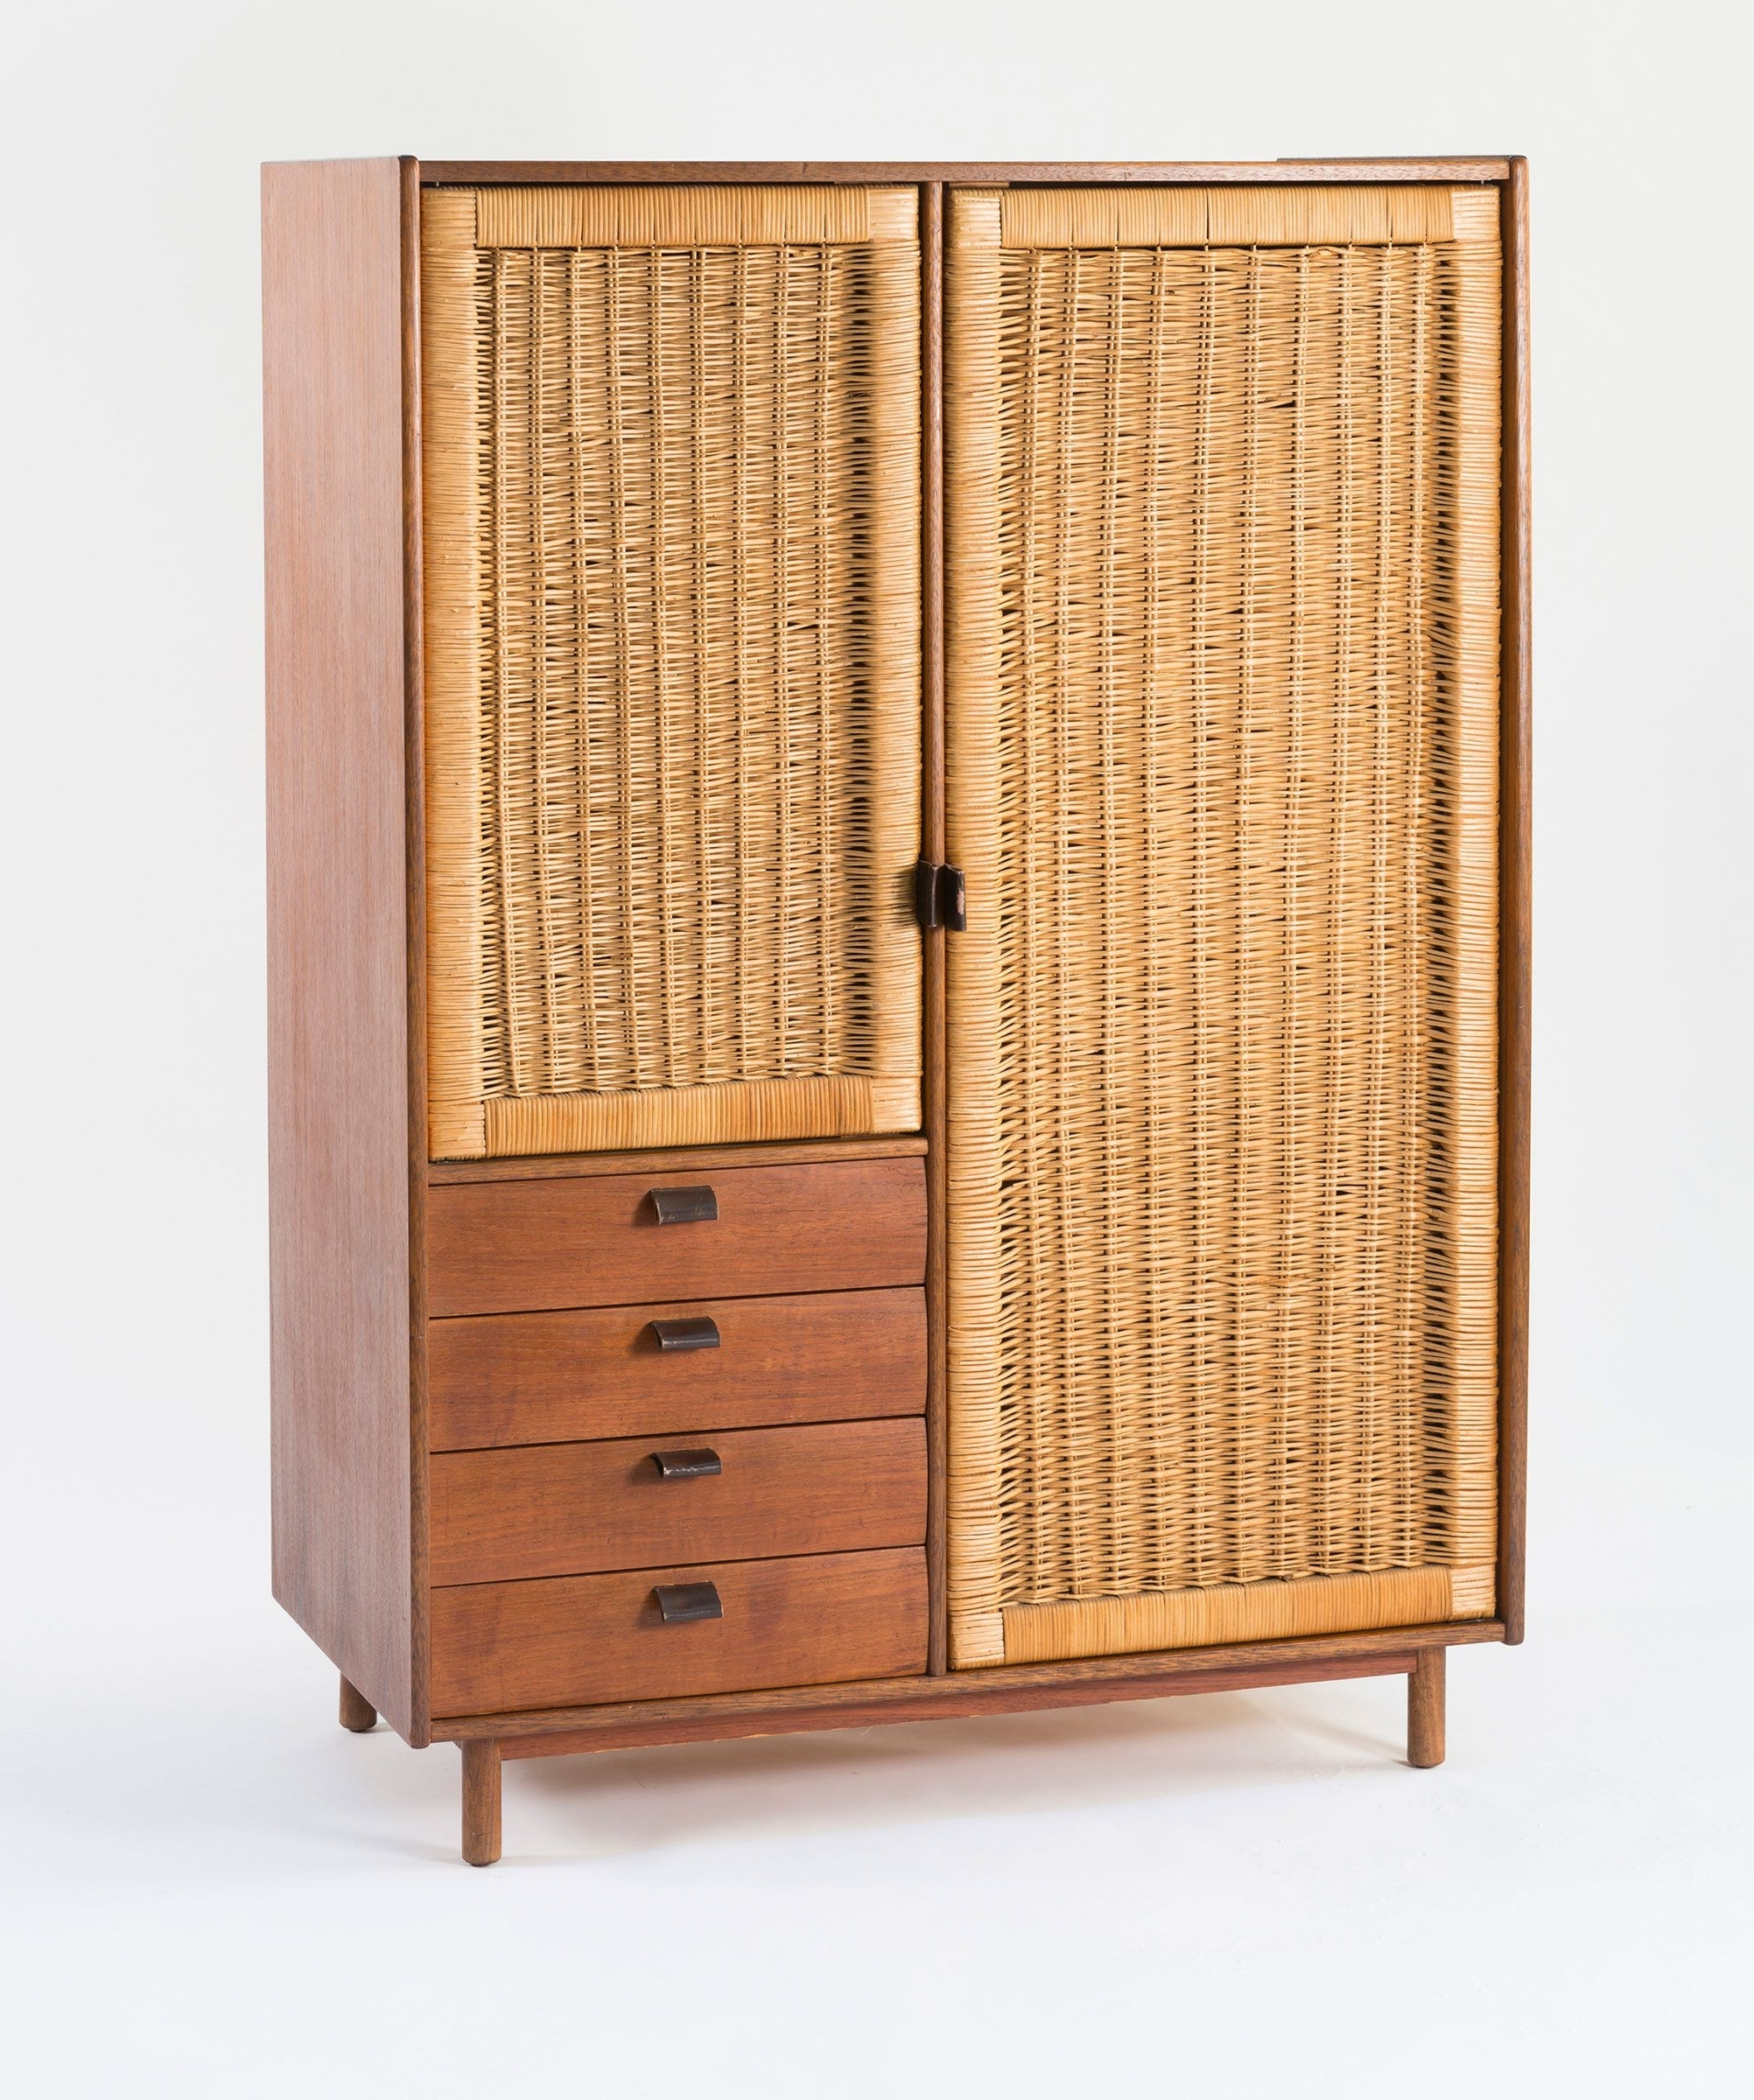 Cased Inside Wicker Armoire Wardrobes (View 1 of 15)